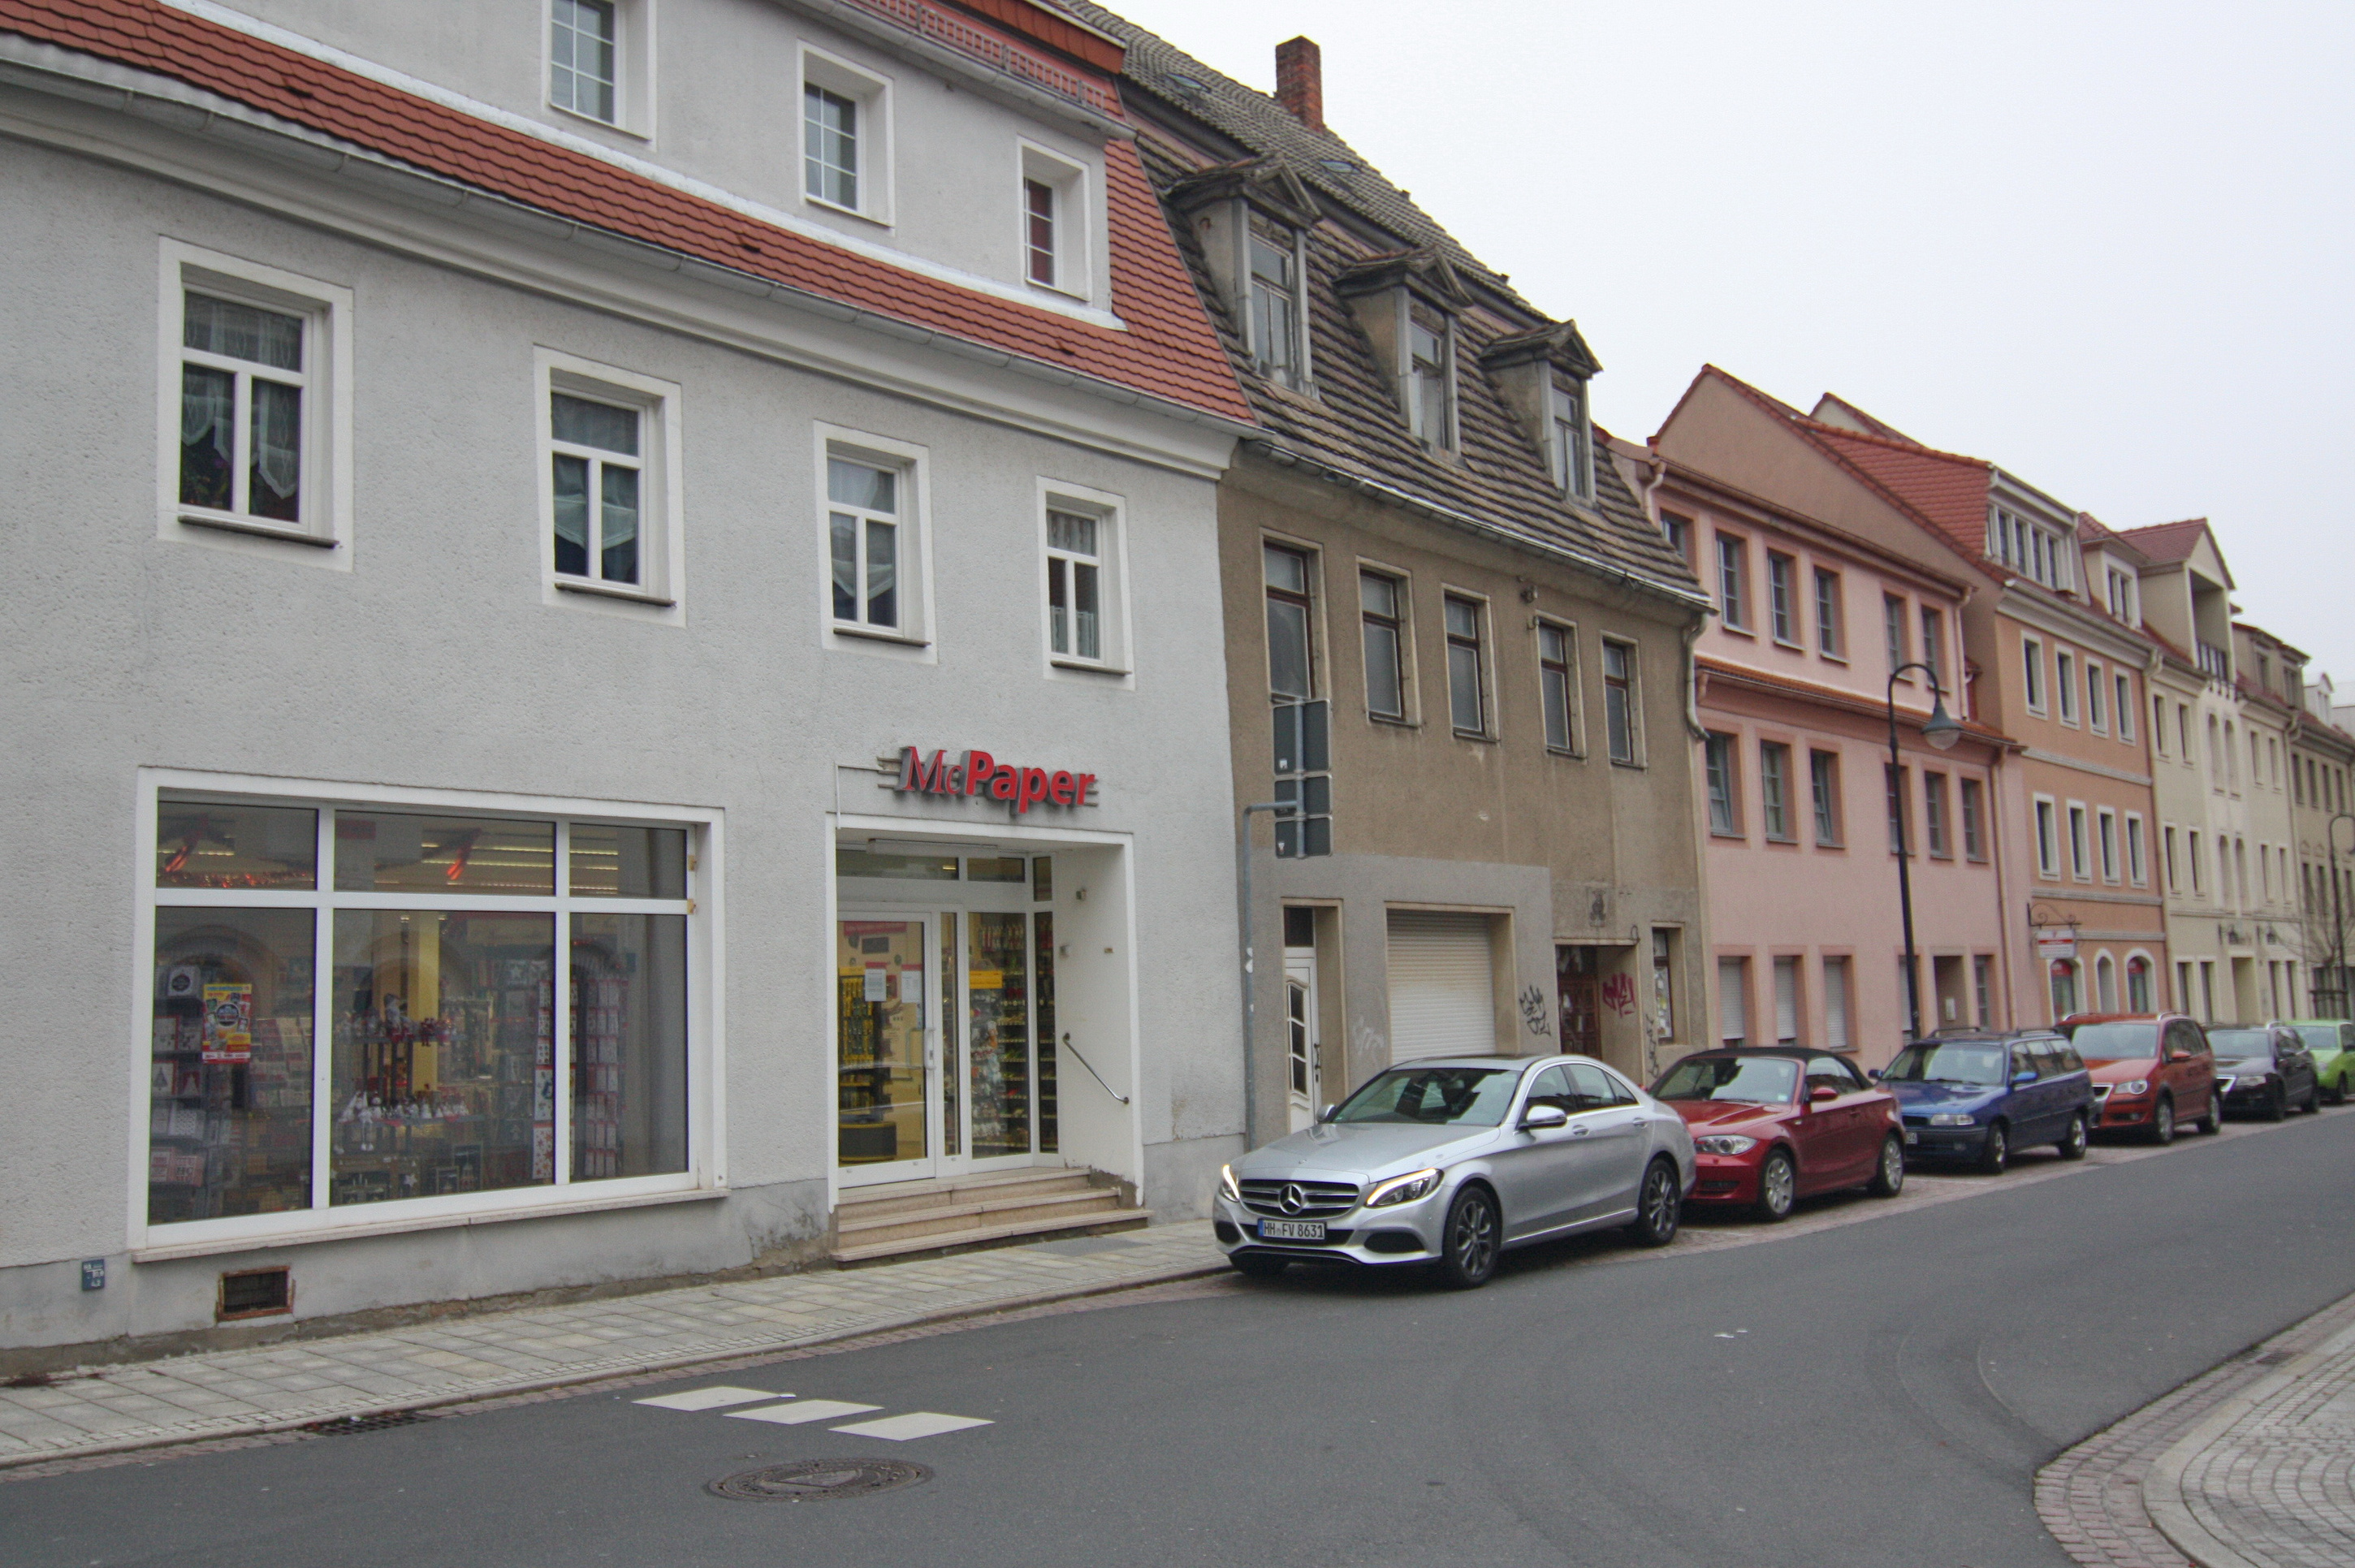 Lot 1 - FREEHOLD HOUSE IN THE CITY CENTRE OF OSCHATZ, SAXONY, GERMANY